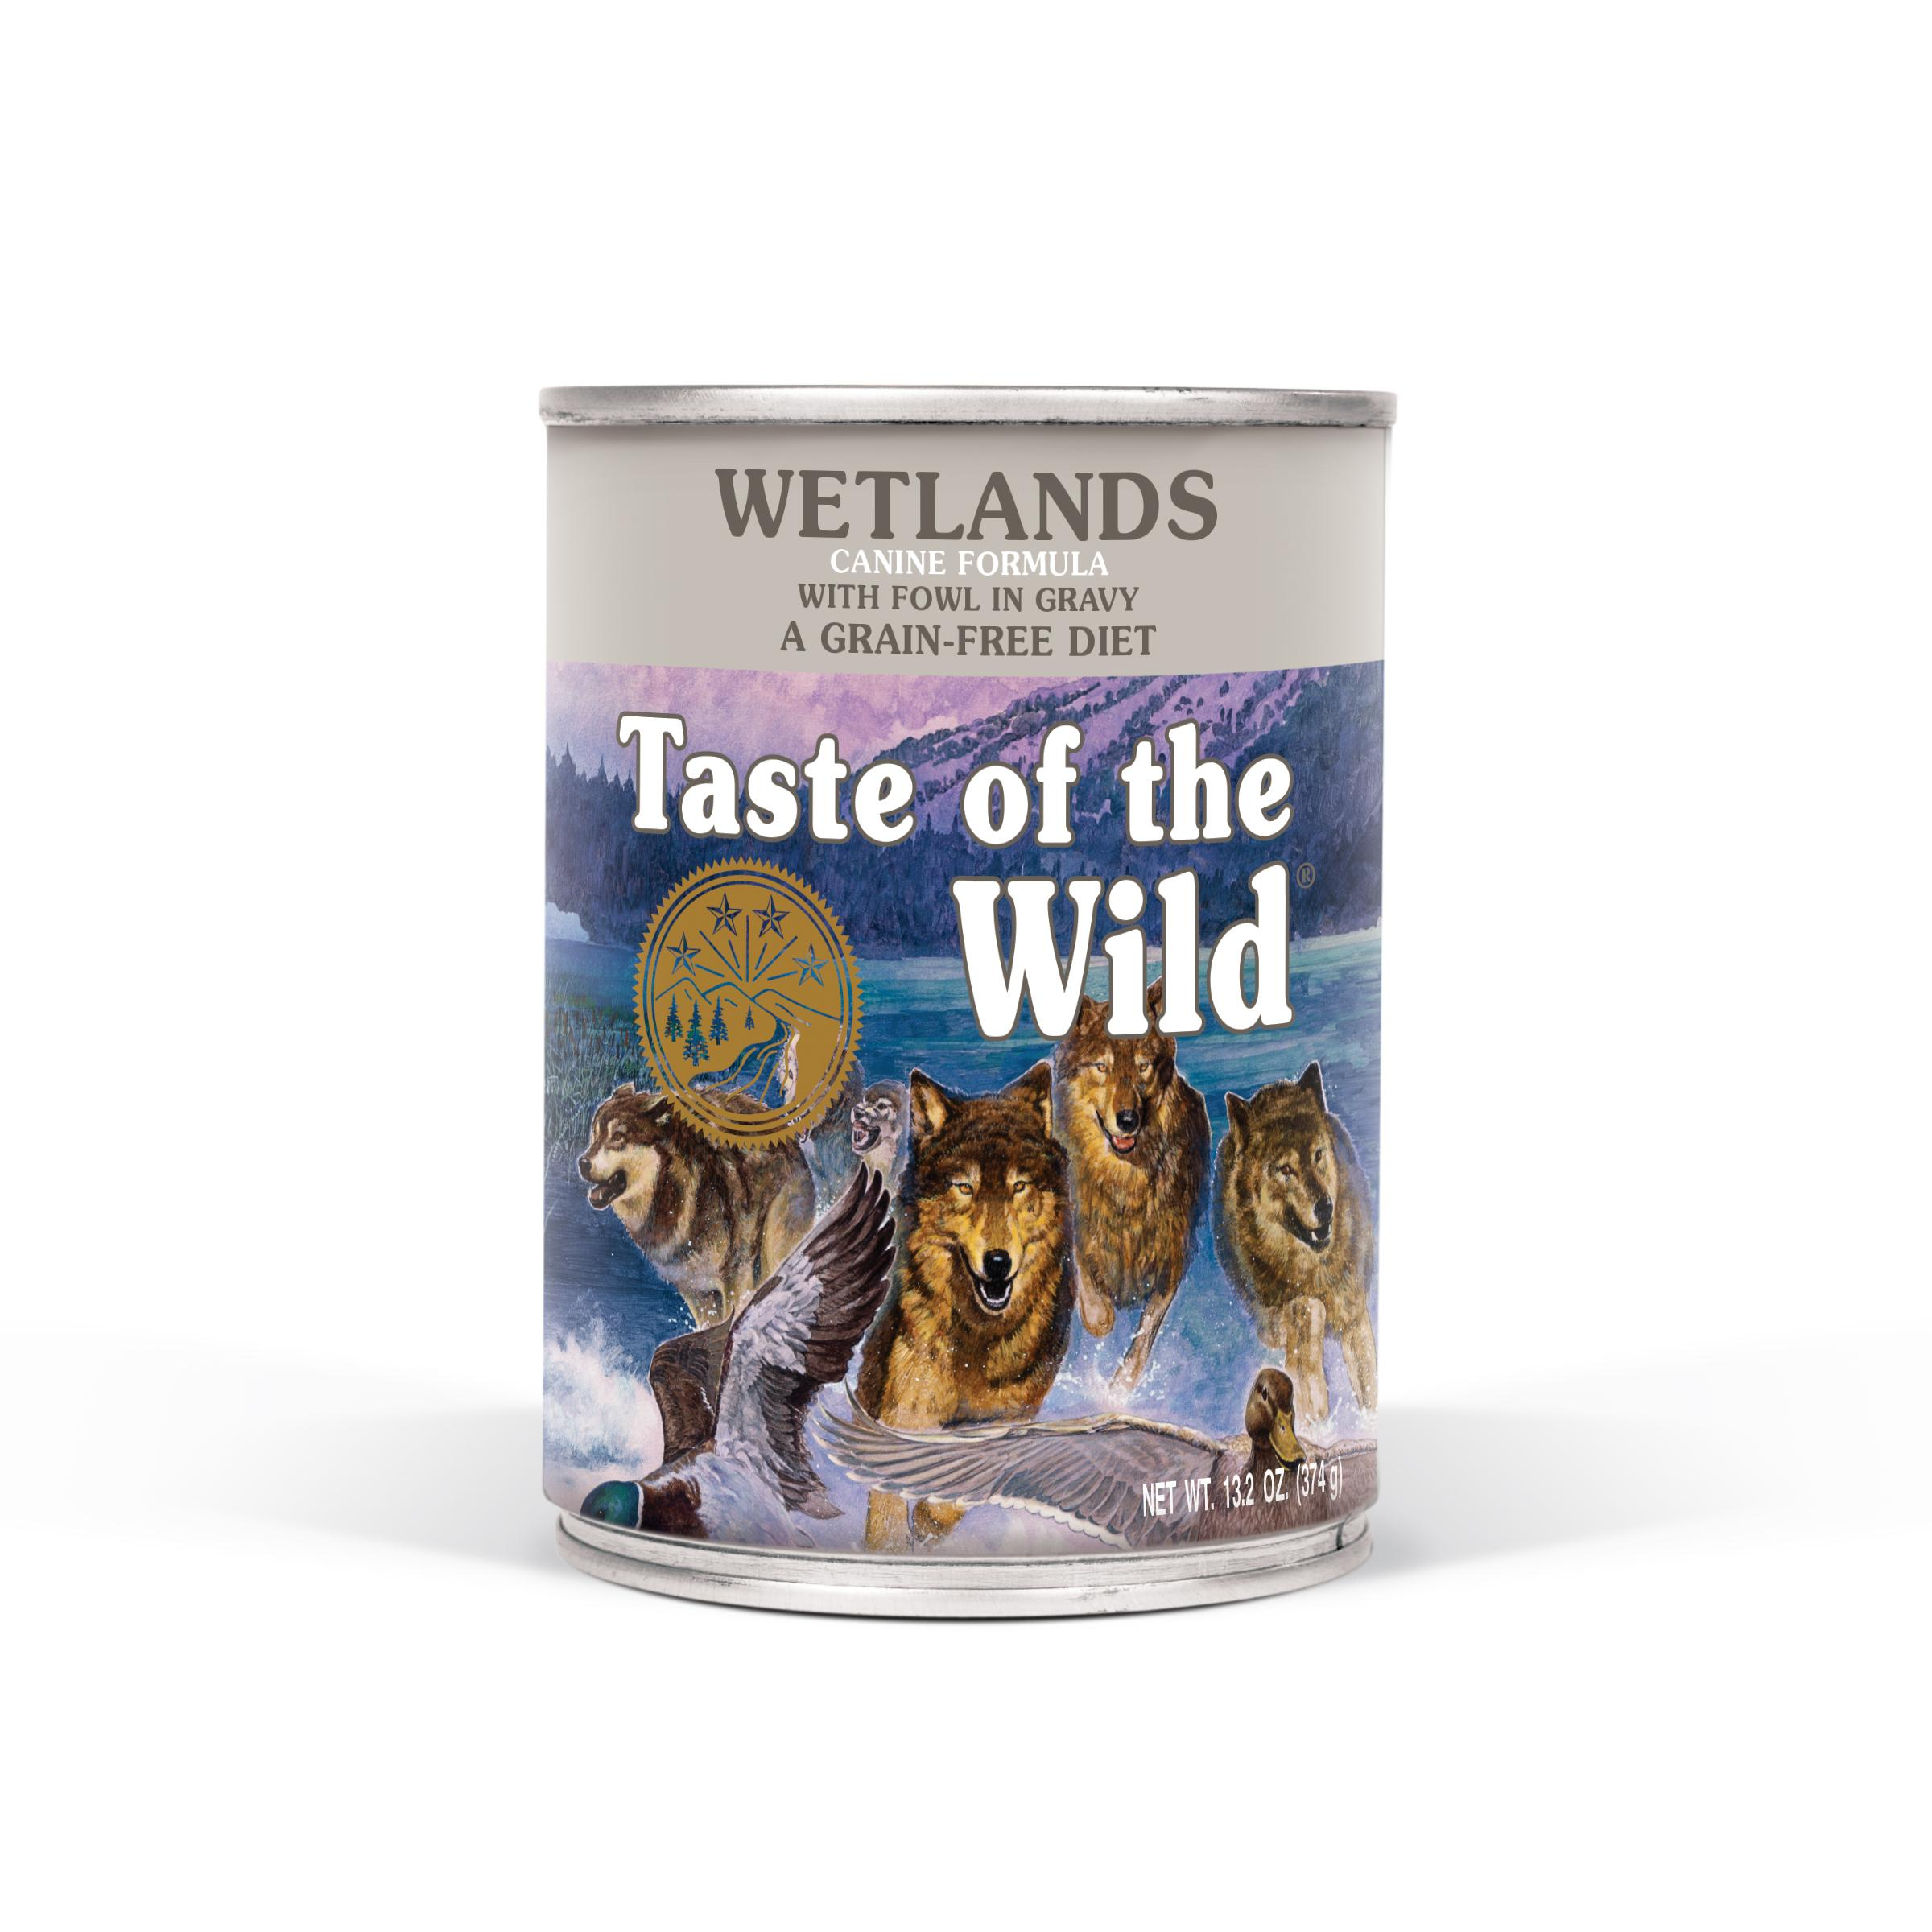 Taste of the Wild Wetlands Grain-Free Canned Dog Food Image